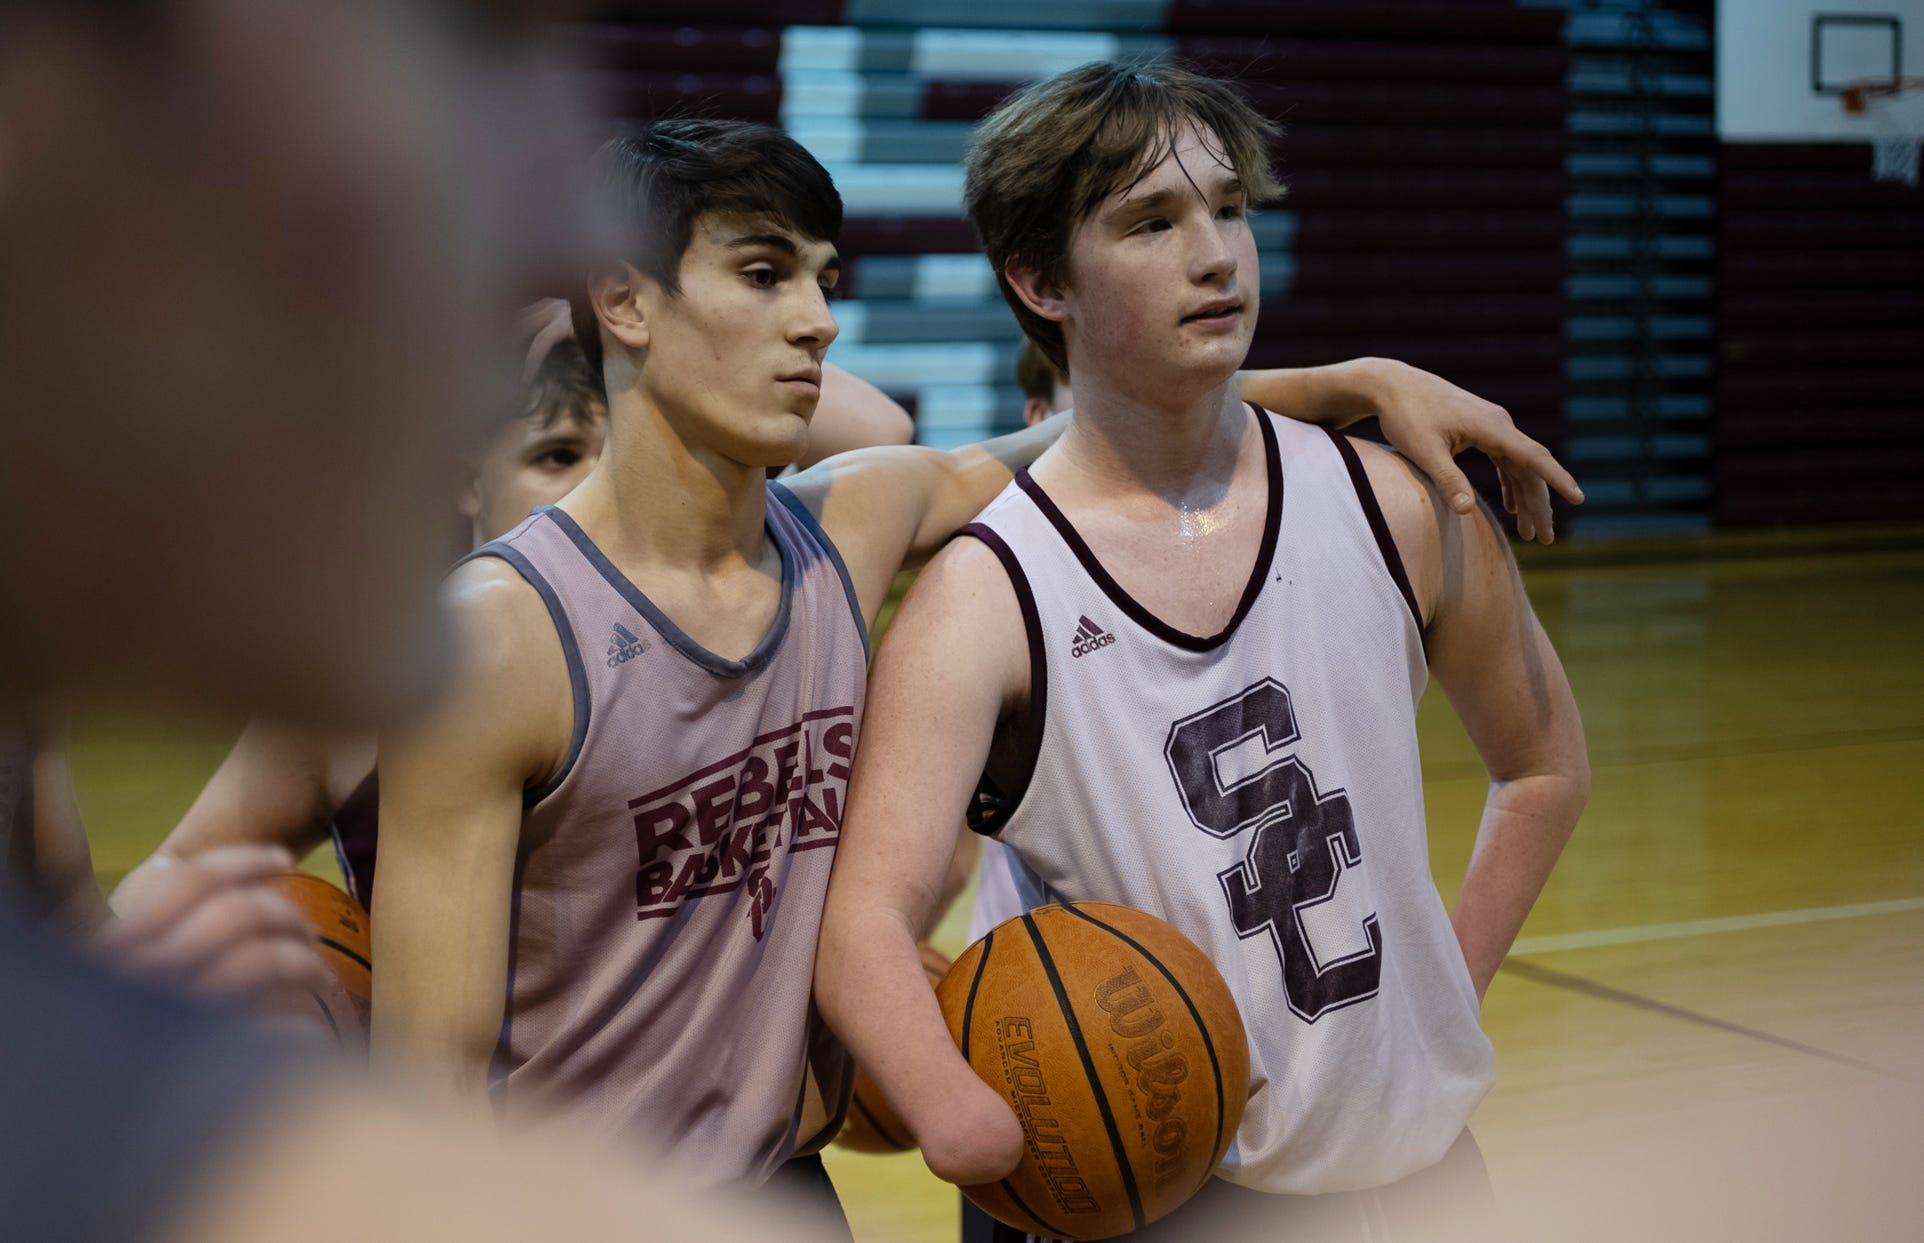 """Kole Stewart (left) puts his arm around Landis Sims on Wednesday, Feb. 24, 2021, as head coach Greg Robinson  gives instructions during practice. """"You know, you worry 'Can he do this or not?,'"""" Robinson said. """"But, that went out the window, probably, day or two of practice this year."""" Sims' first shot of the year was a trailing three point swish."""